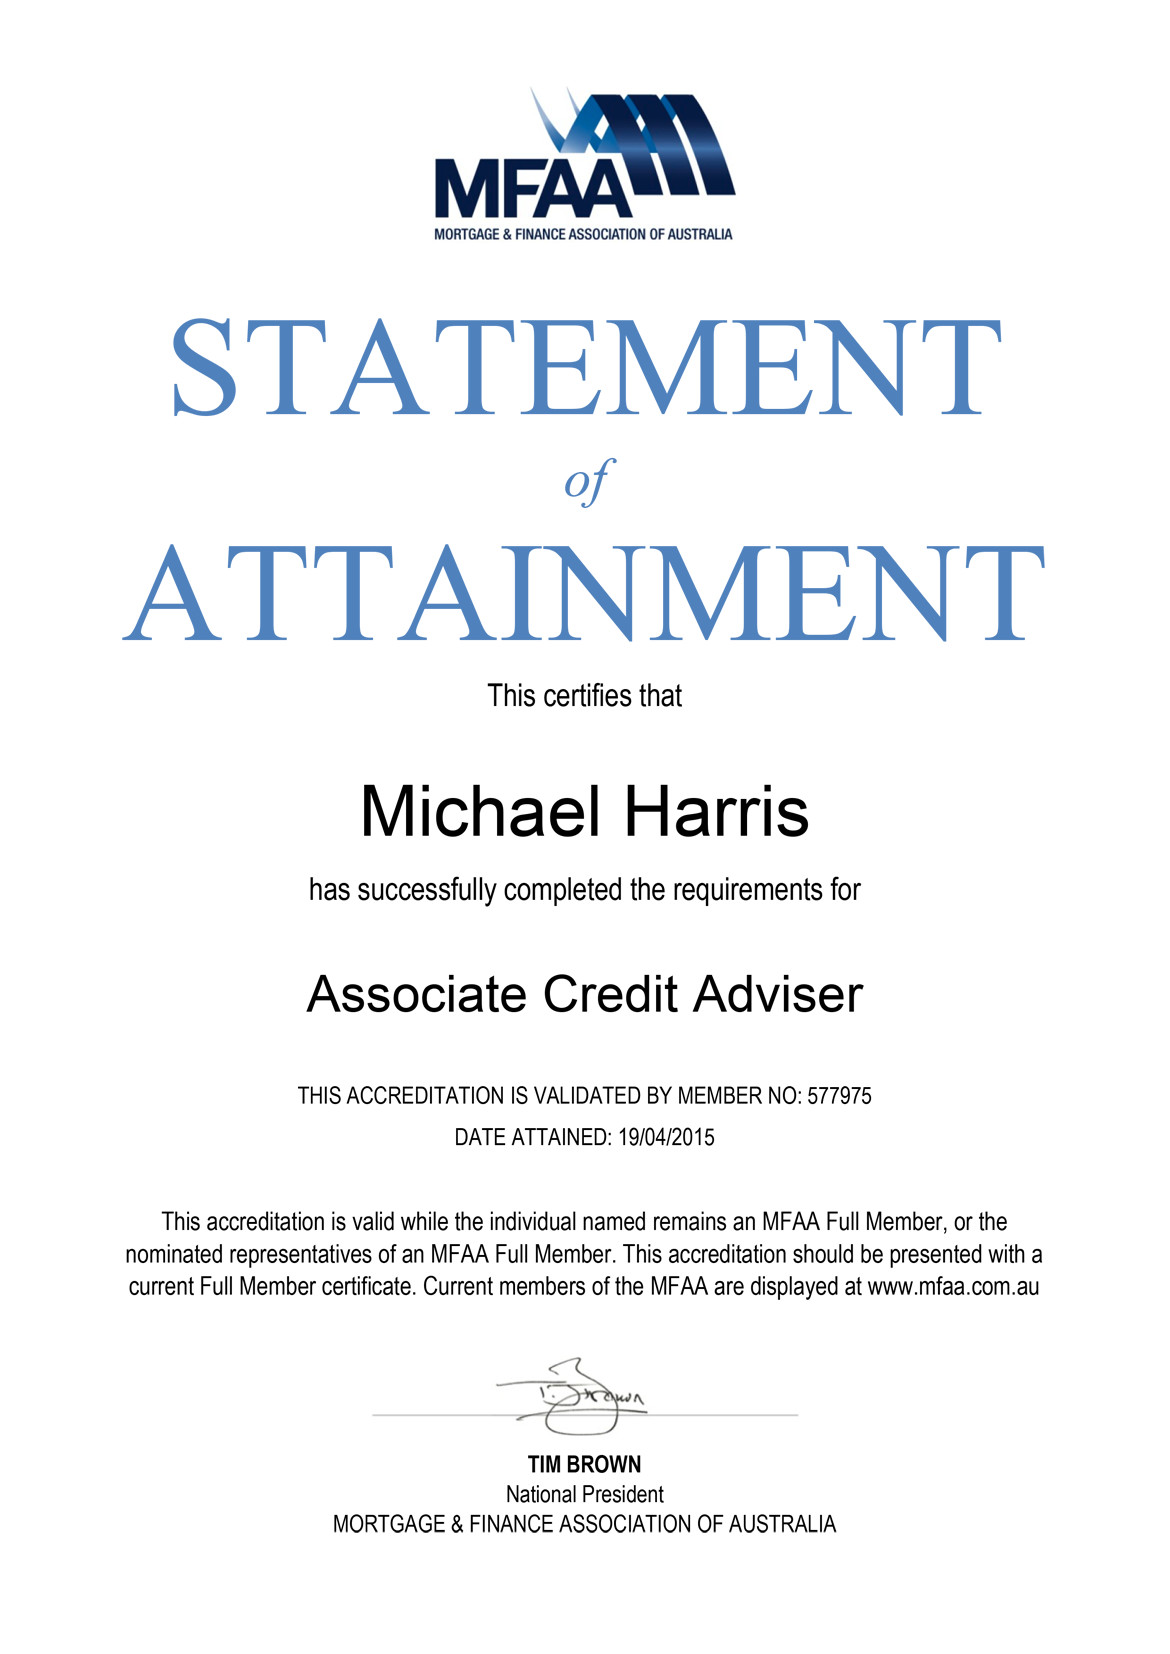 MFAA Statement of Attainment Certificate